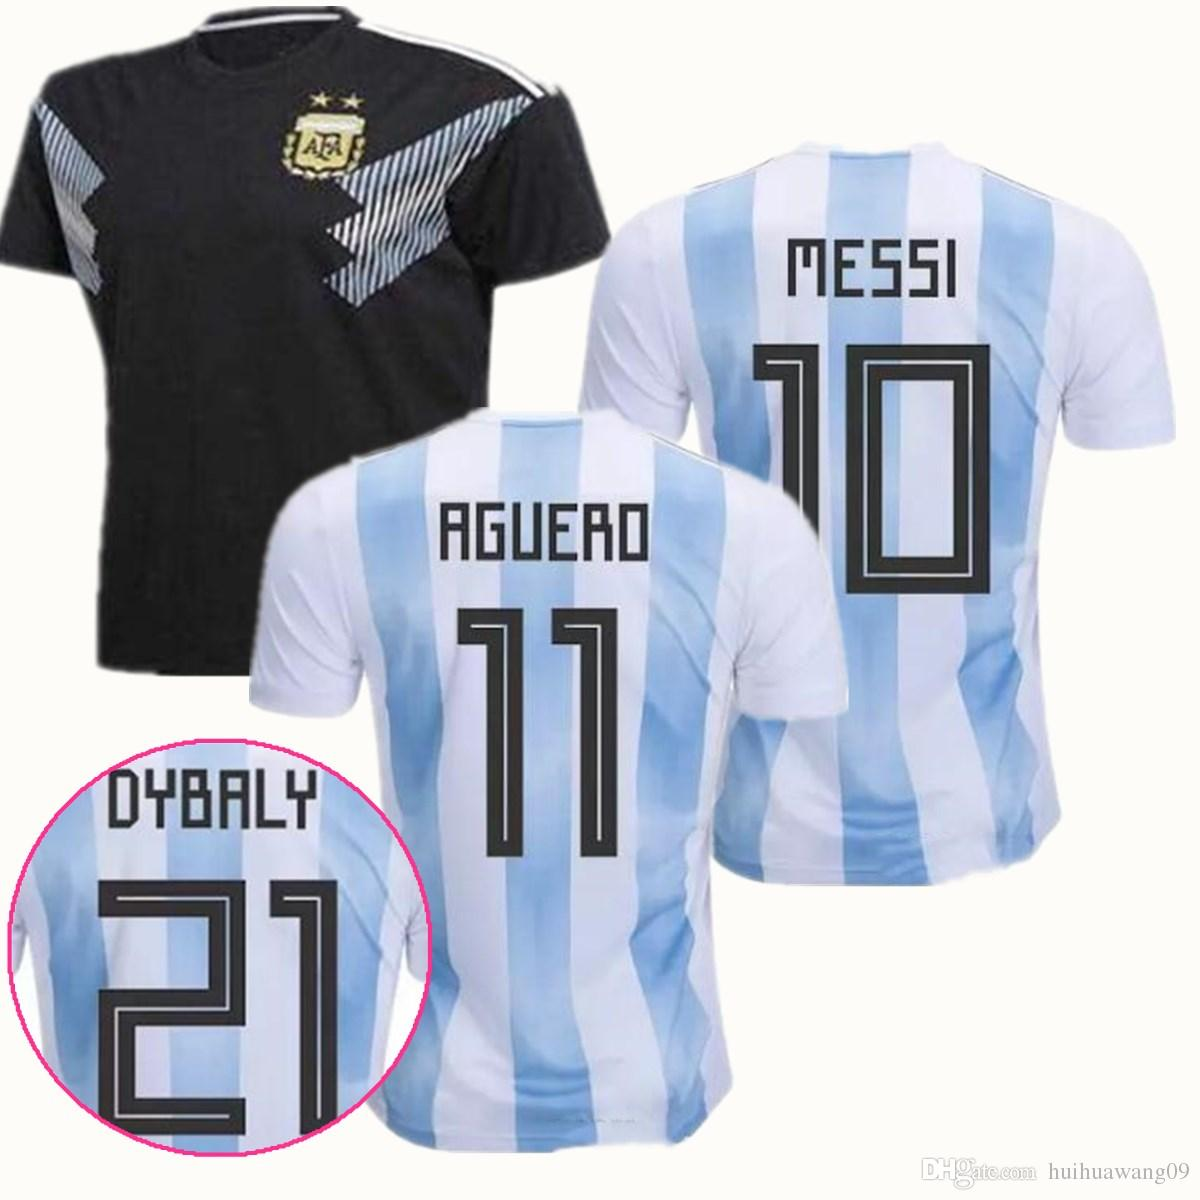 03273b52a 2019 2018 World Cup Argentina Soccer Jerseys Messi Di Maria Aguero  Mascherano Icardi Higuain Pastore Away Argentina Jersey Men Football Shirt  Kit From ...